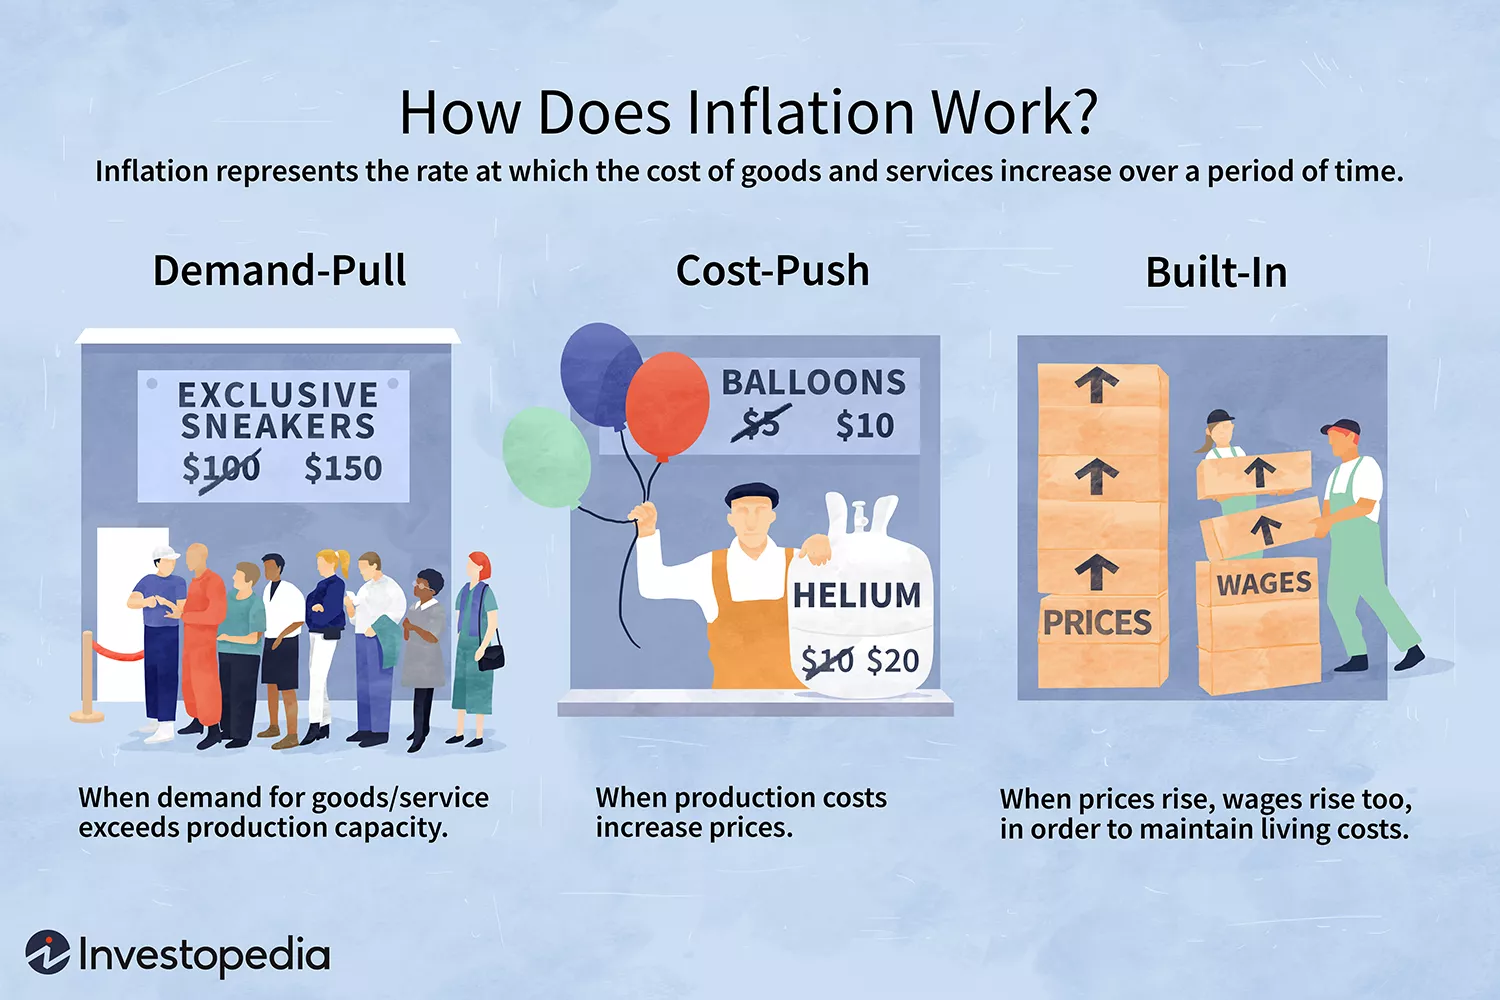 How Does Inflation Work?